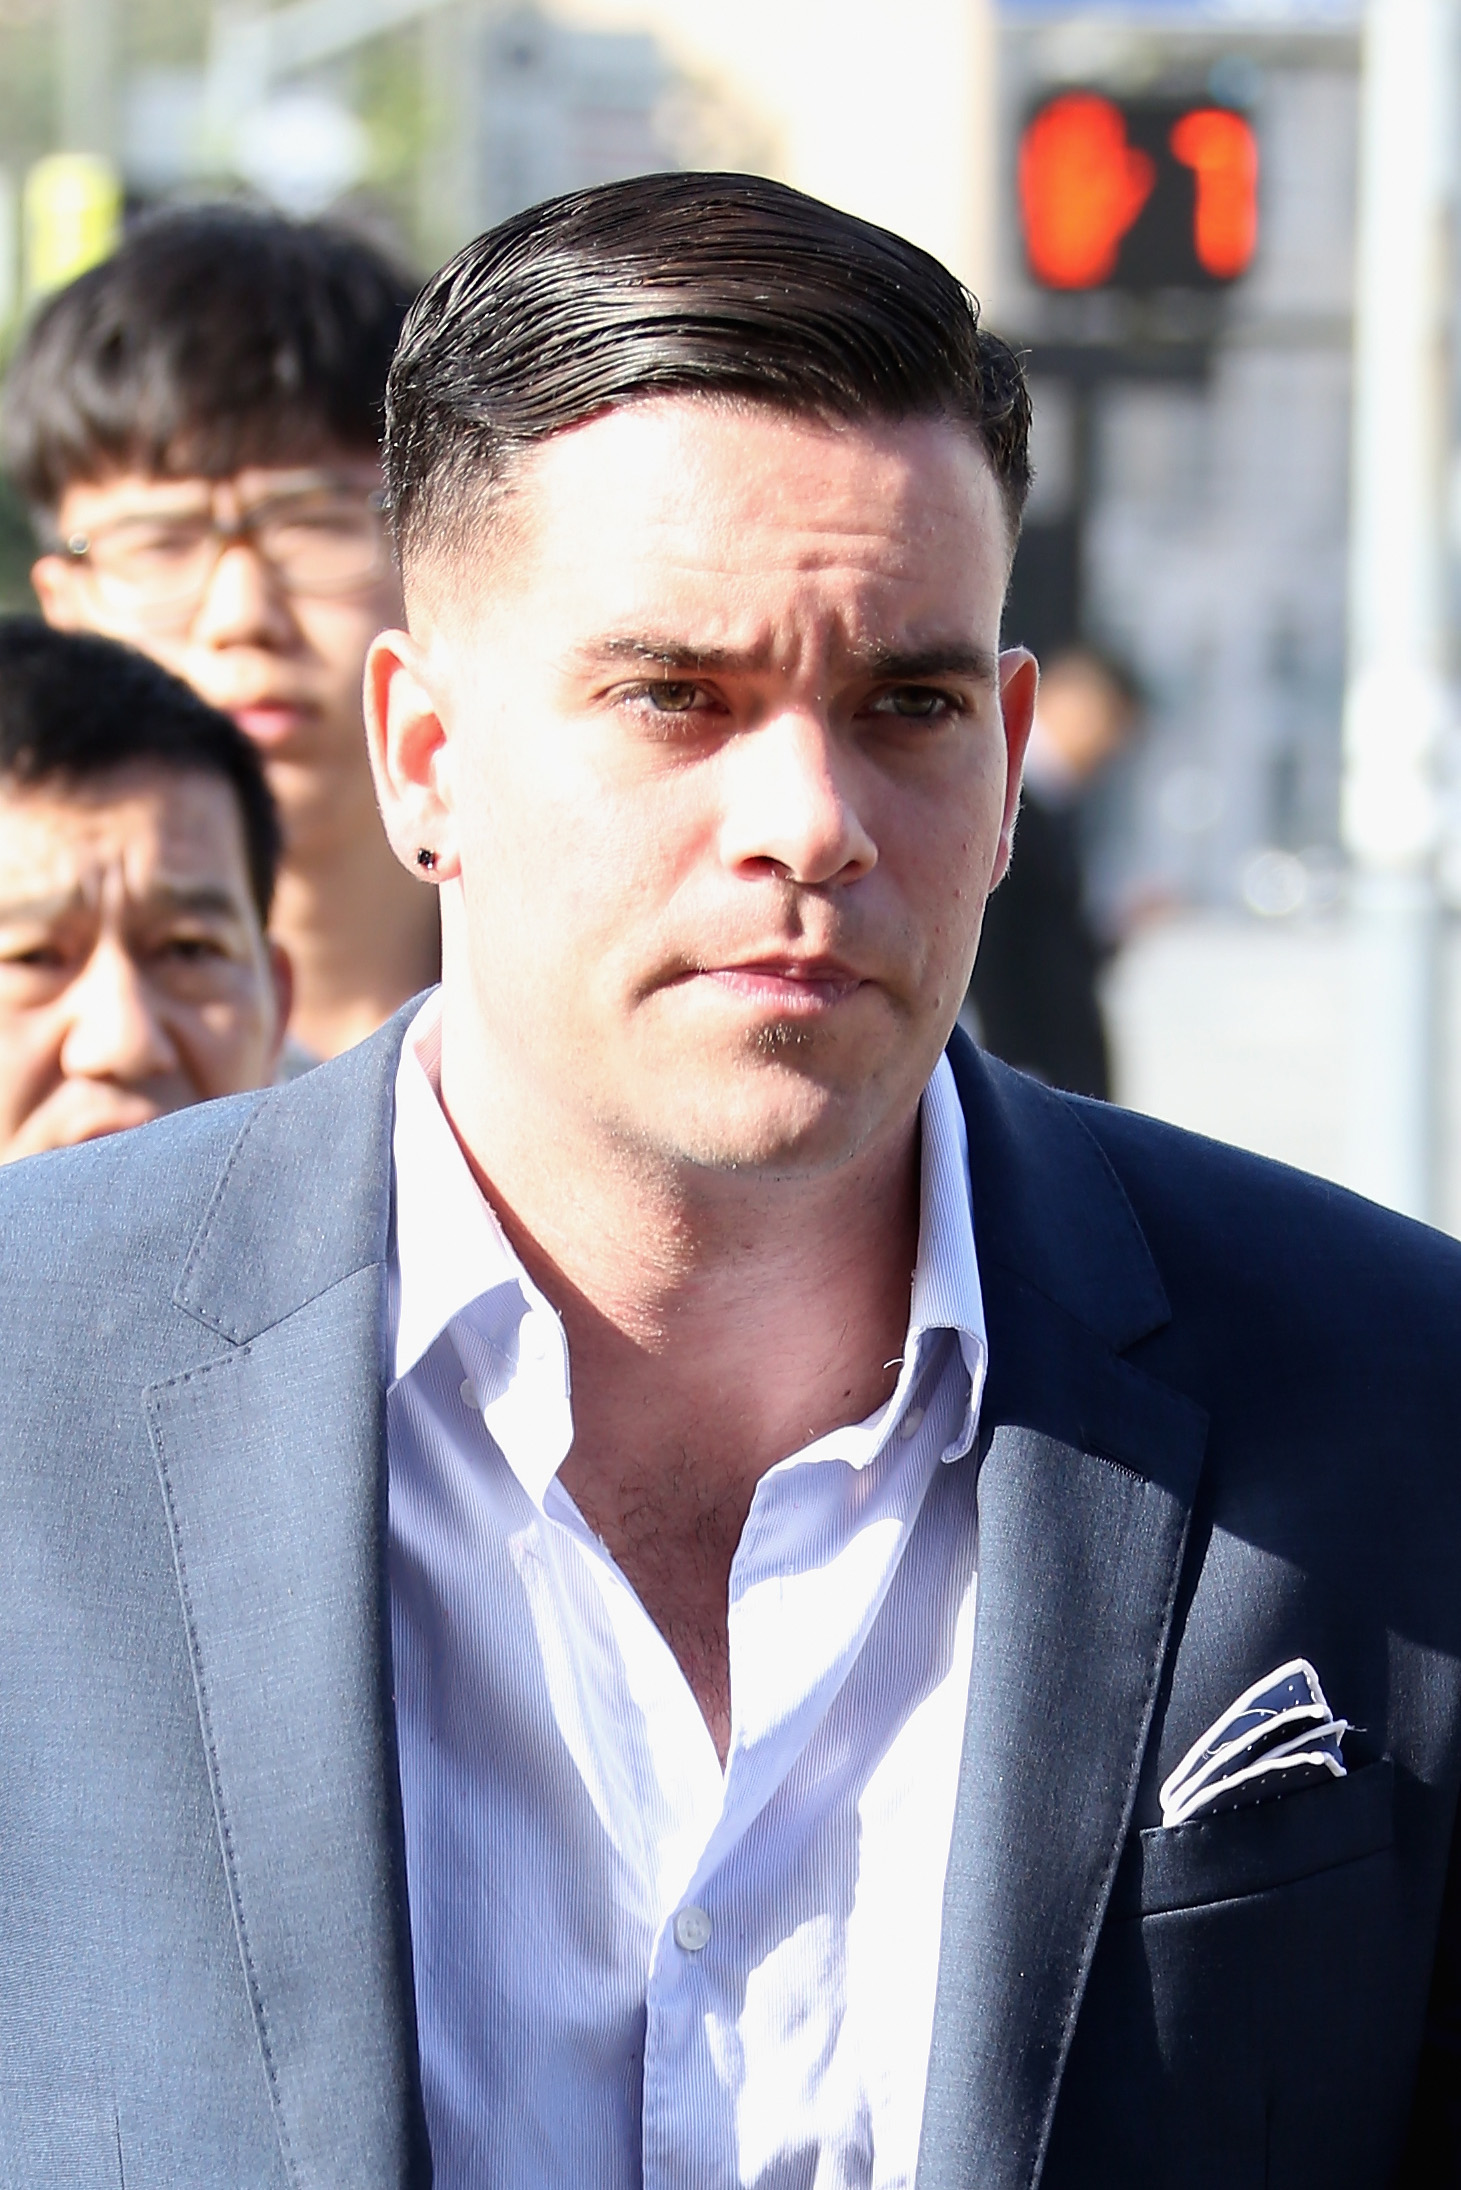 Glee Actor Mark Salling Found Dead While On Trial For Possession Of Child Porn GettyImages 537924886